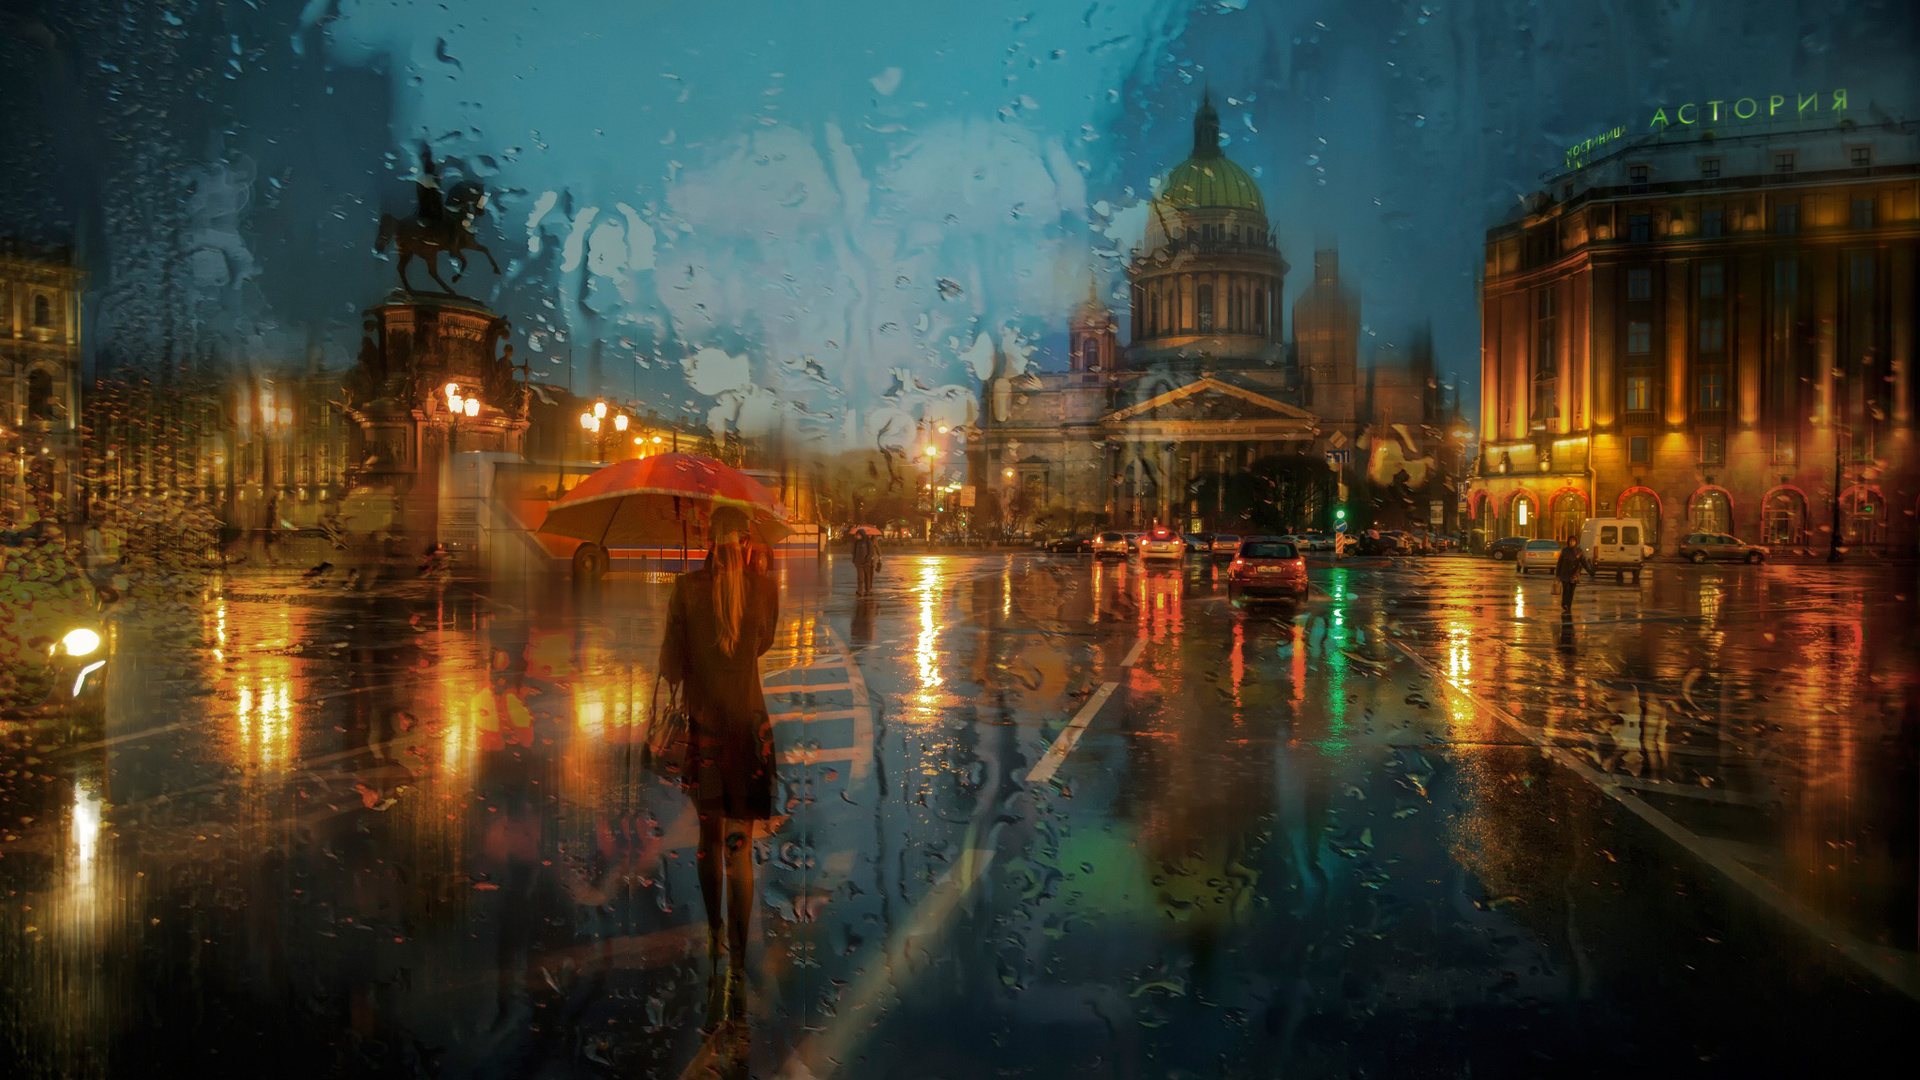 St Petersburg In Rainy Season Wallpaper